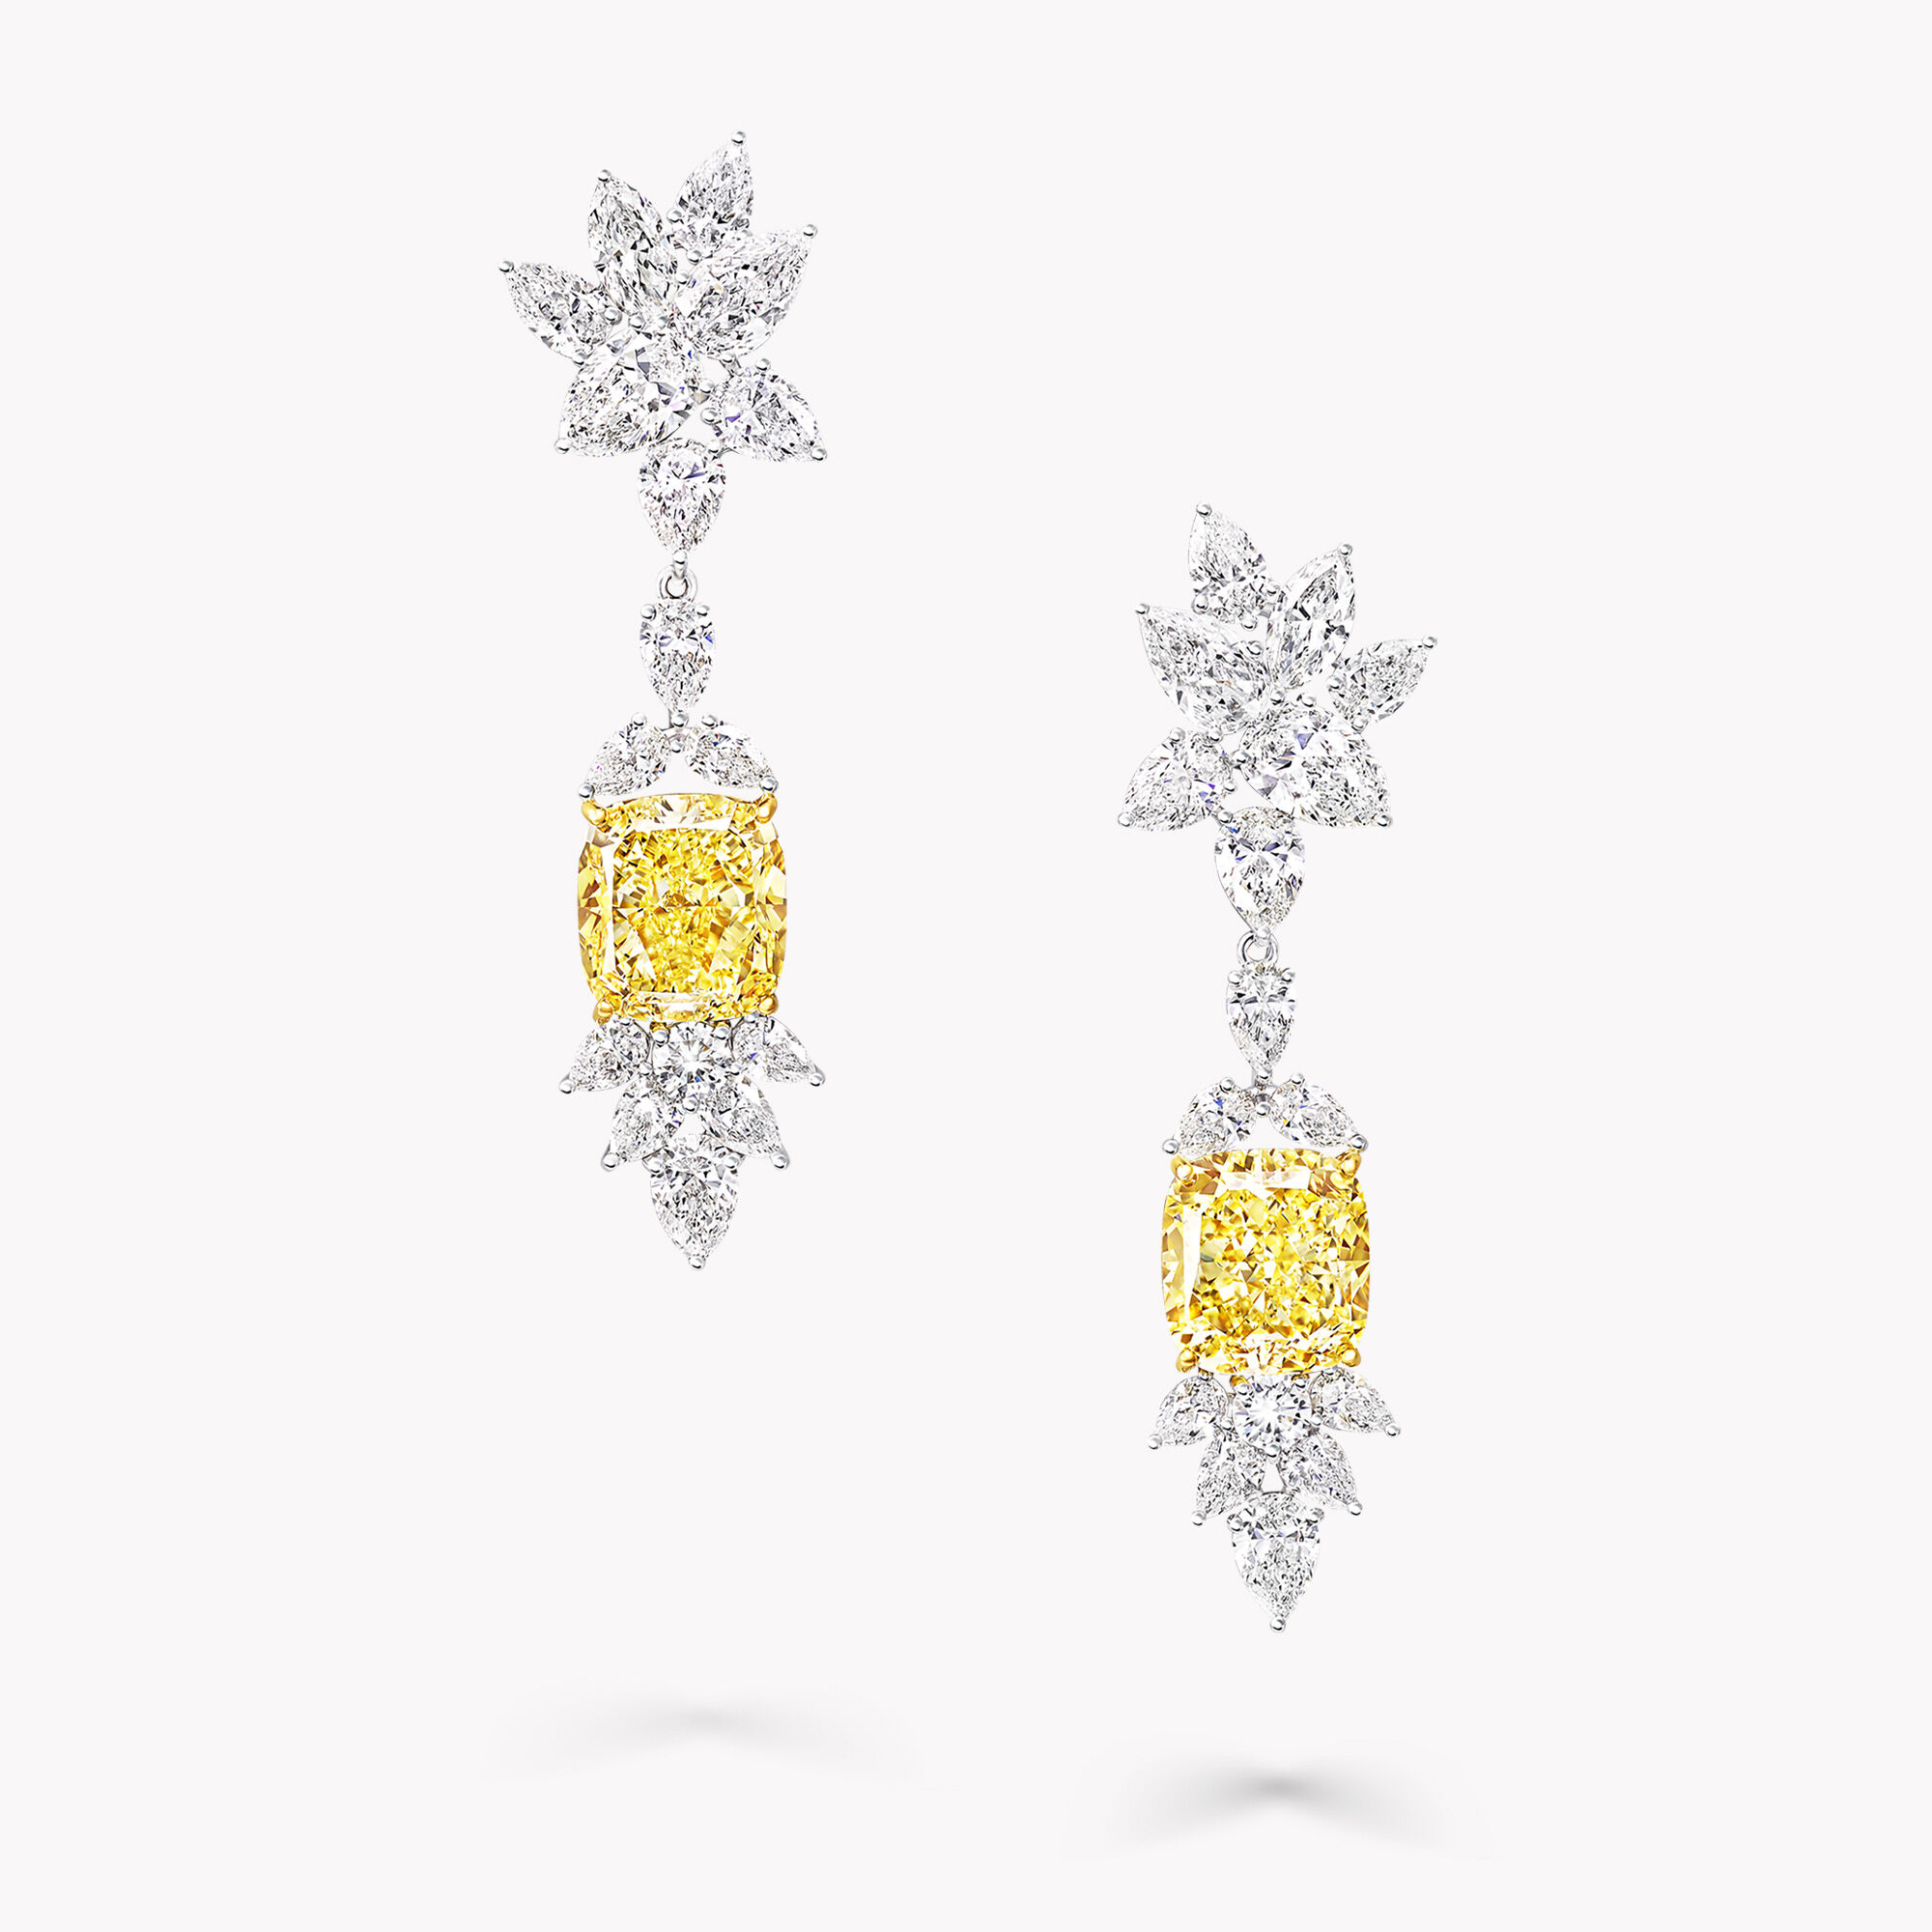 A pair of Graff yellow and white diamond high jewellery earrings